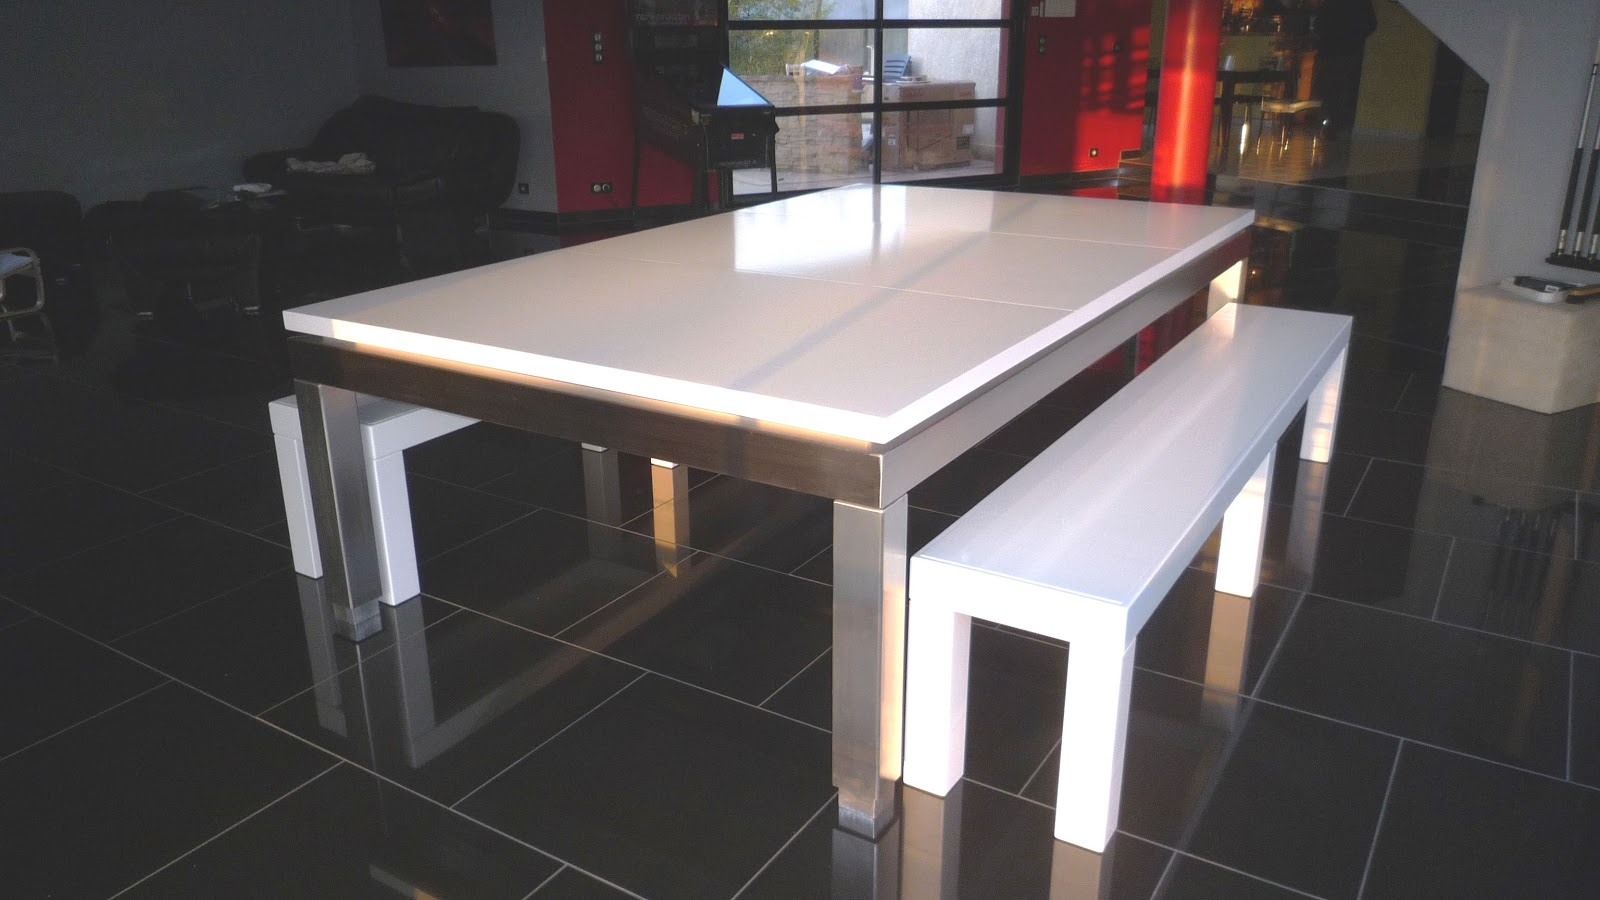 Fabricant de billards id es design et d coration dans l 39 univers du billa - Table de billard transformable en table de salle a manger ...